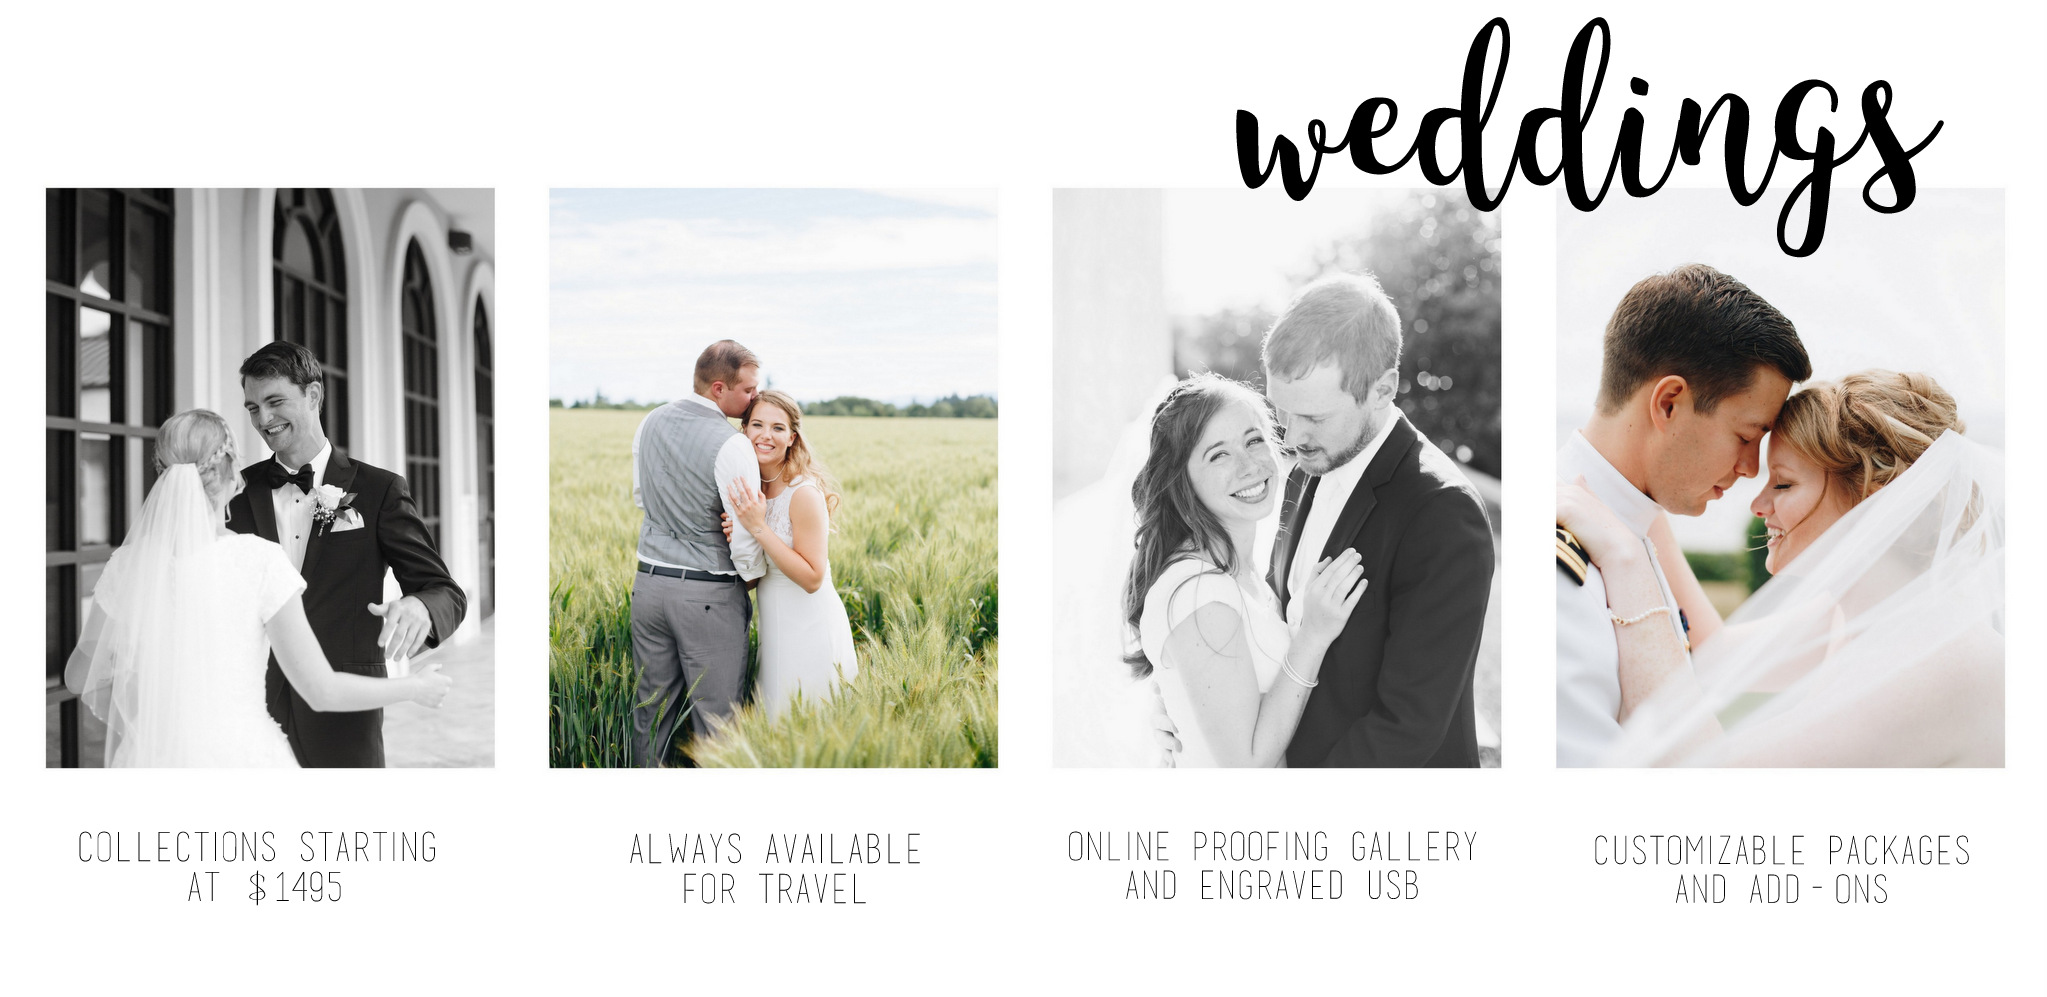 WEDDING COLLECTION OPTIONS FROM HANNAH ACHESON PHOTOGRAPHY, SPOKANE PHOTOGRAPHER